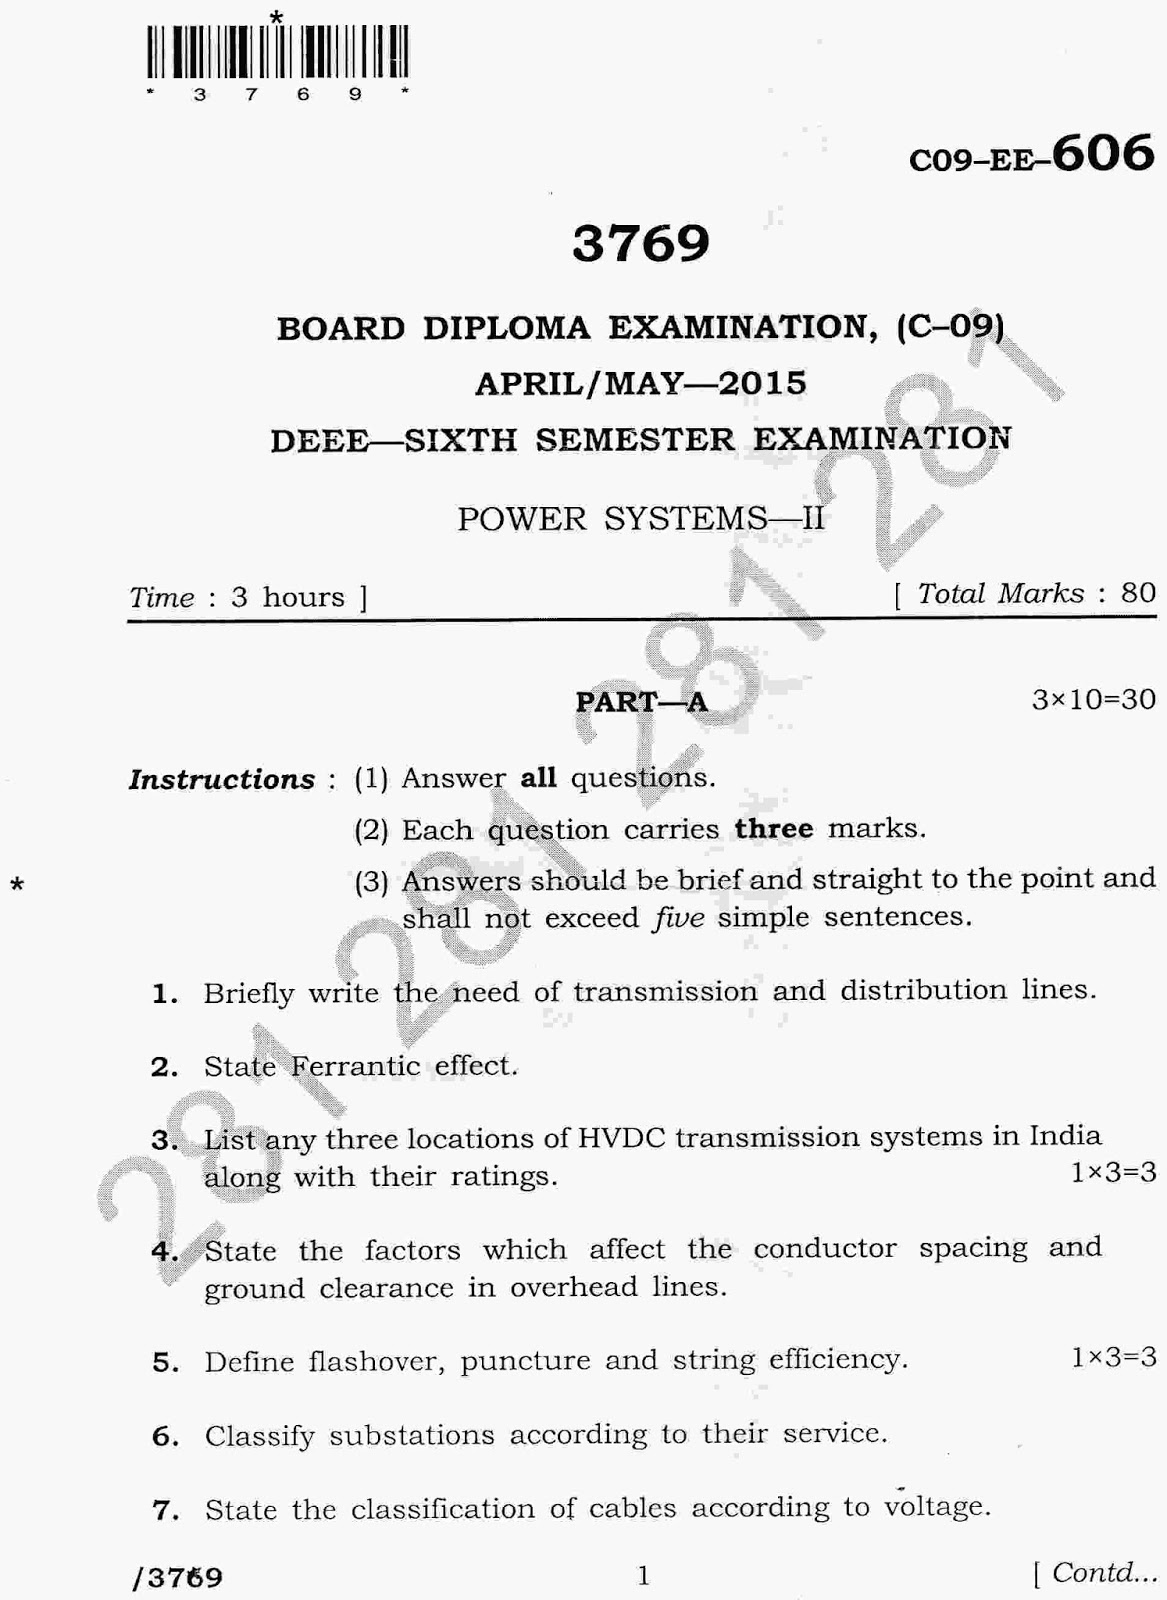 POWER SYSTEMS 2 PDF DOWNLOAD